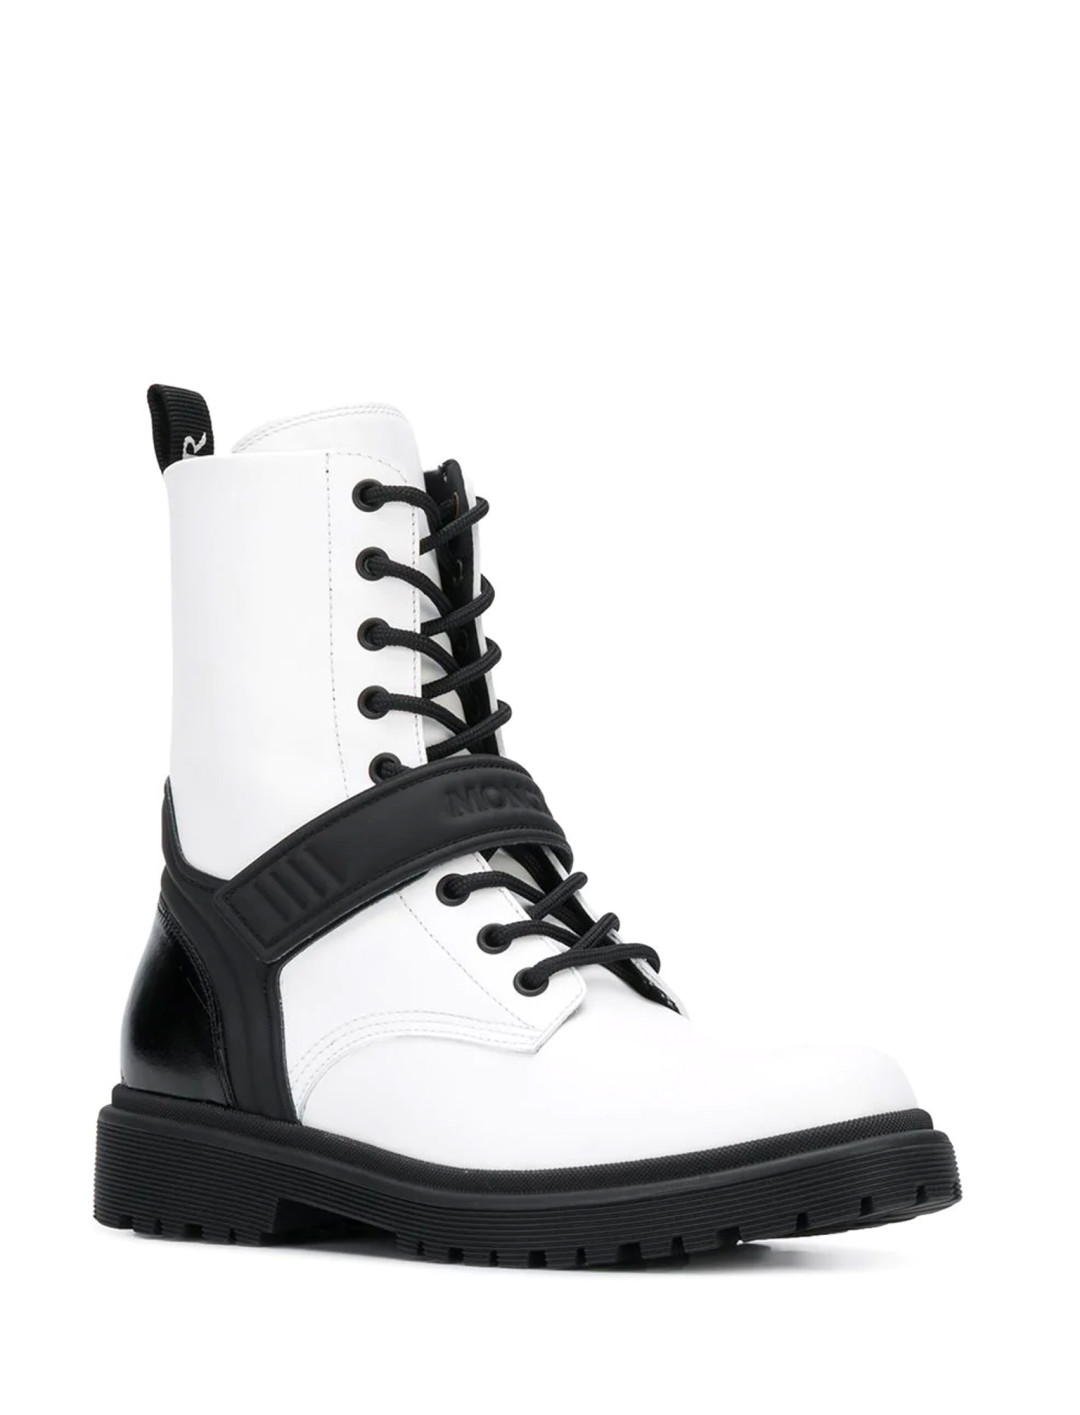 Calypso Boots Shoes